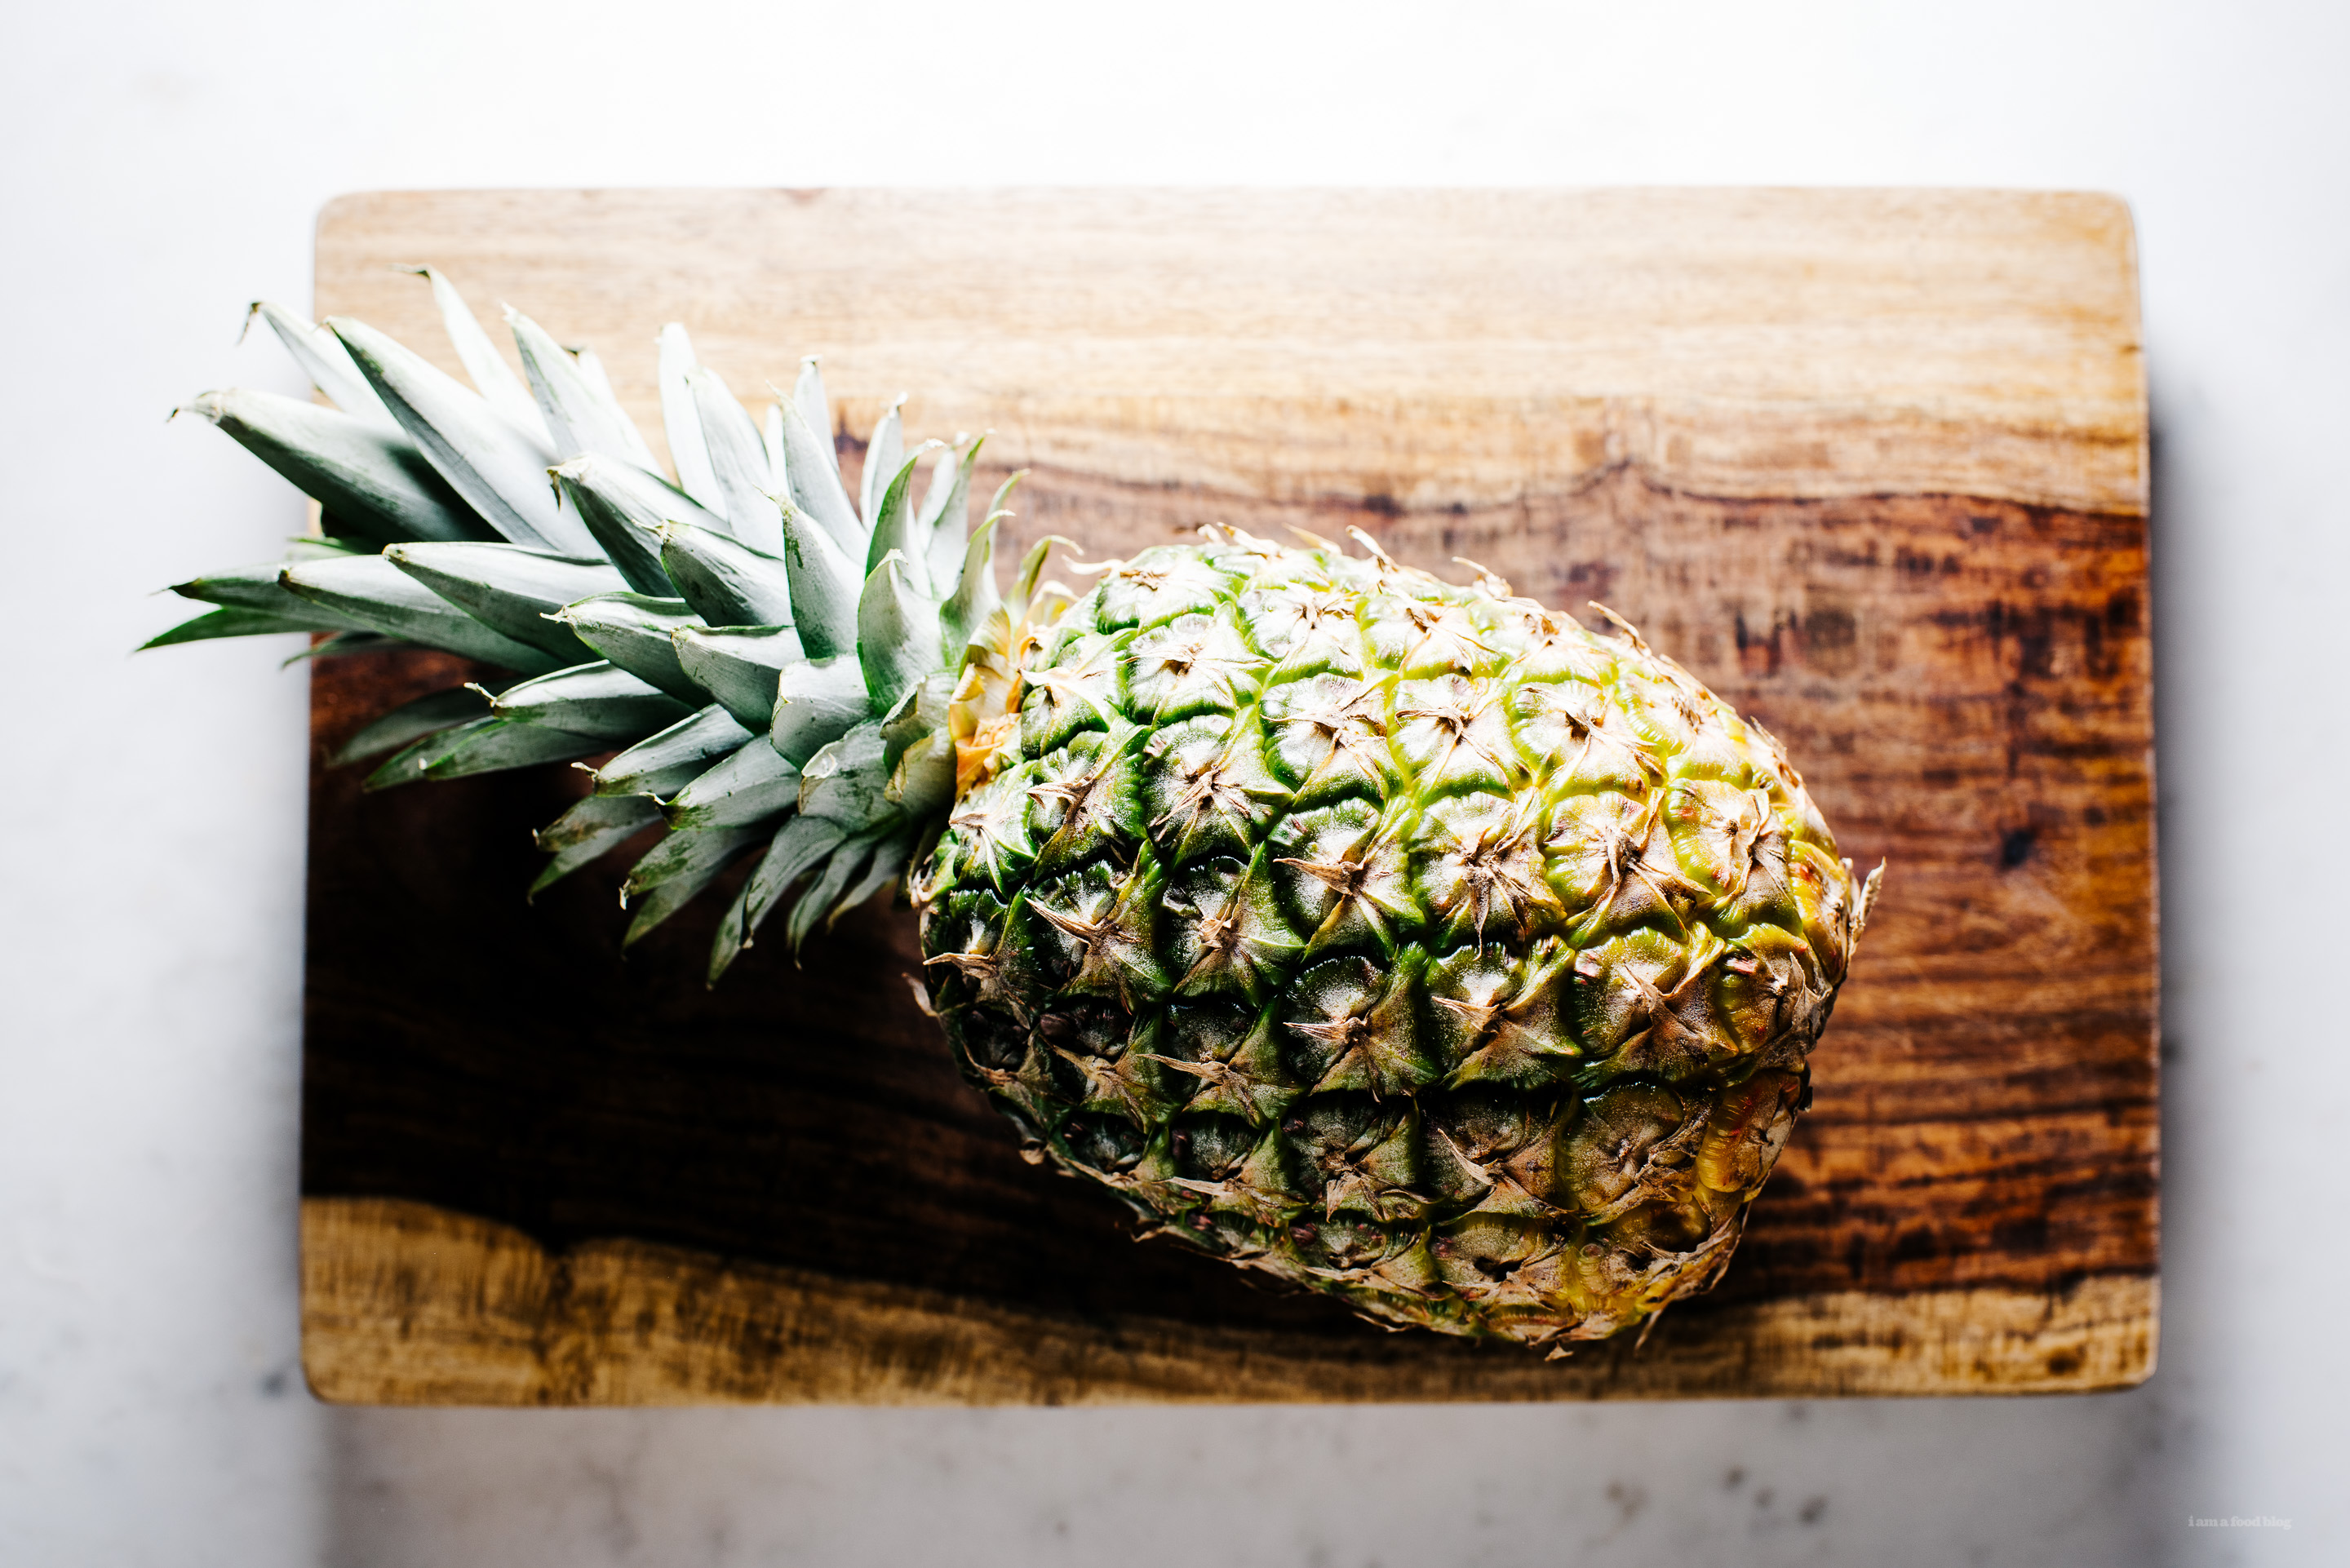 how to cut a pineapple - www.iamafoodblog.com